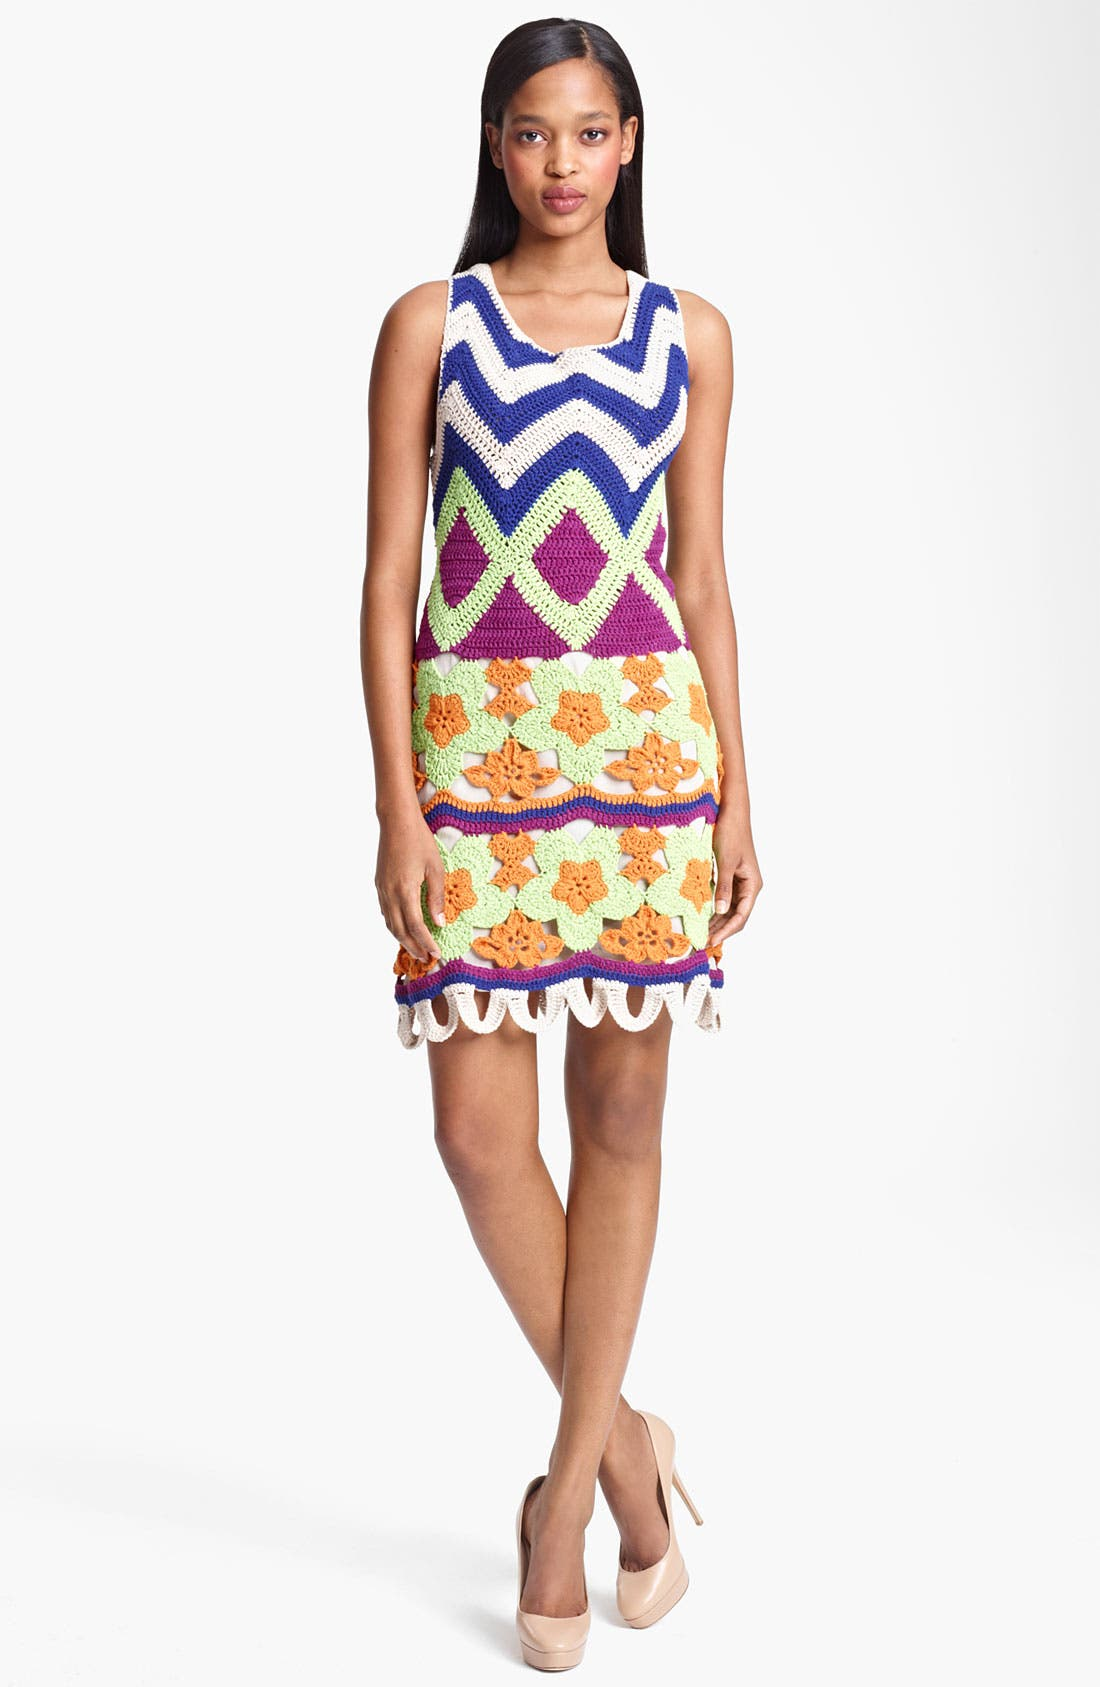 Main Image - Moschino Cheap & Chic Crochet Dress